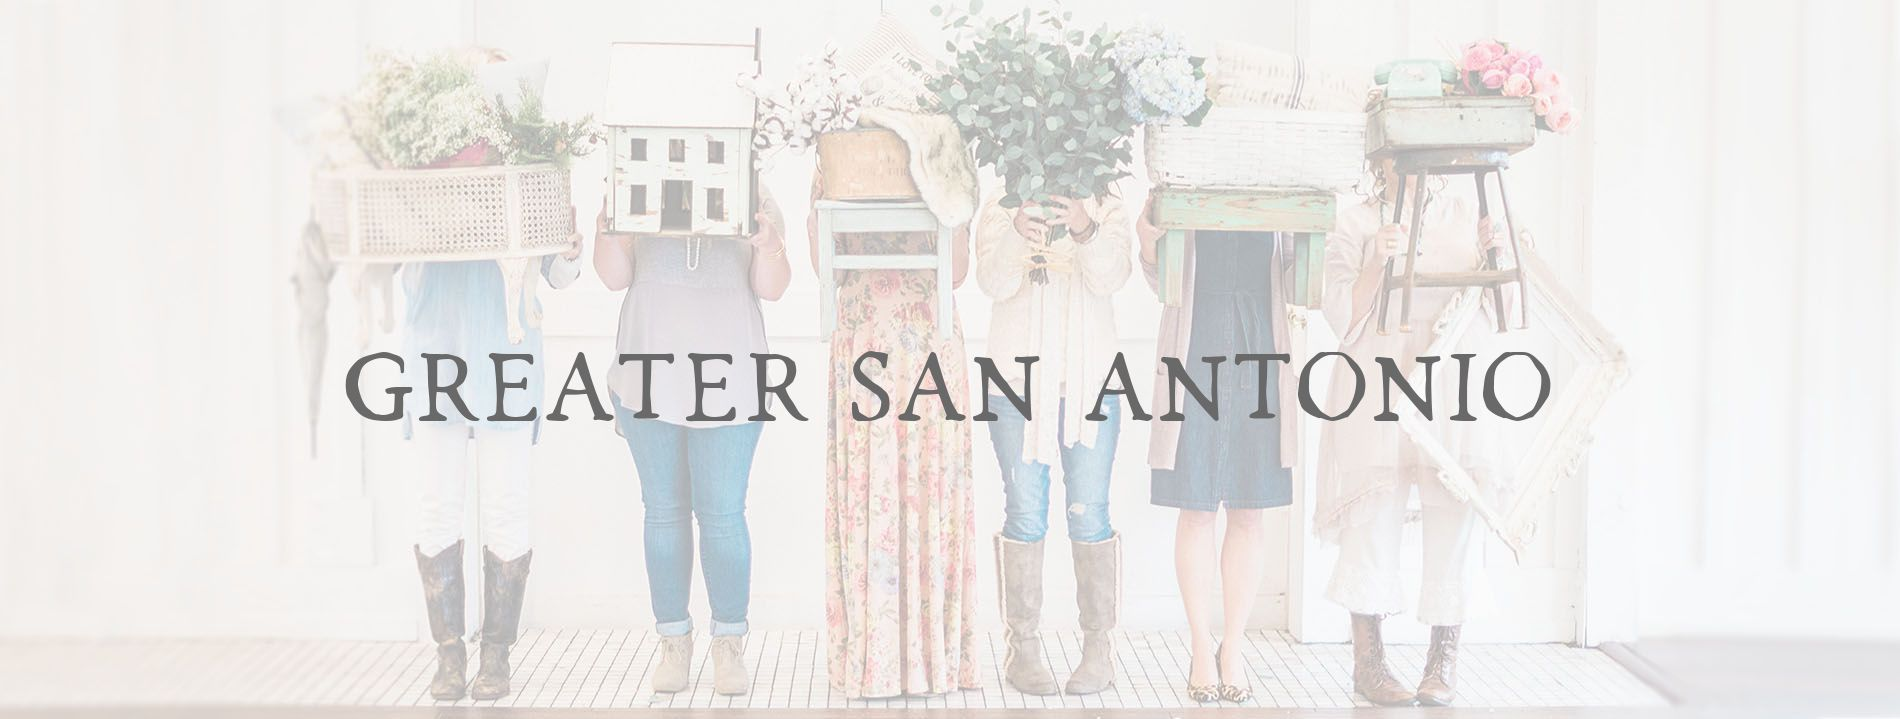 Greater San Antonio